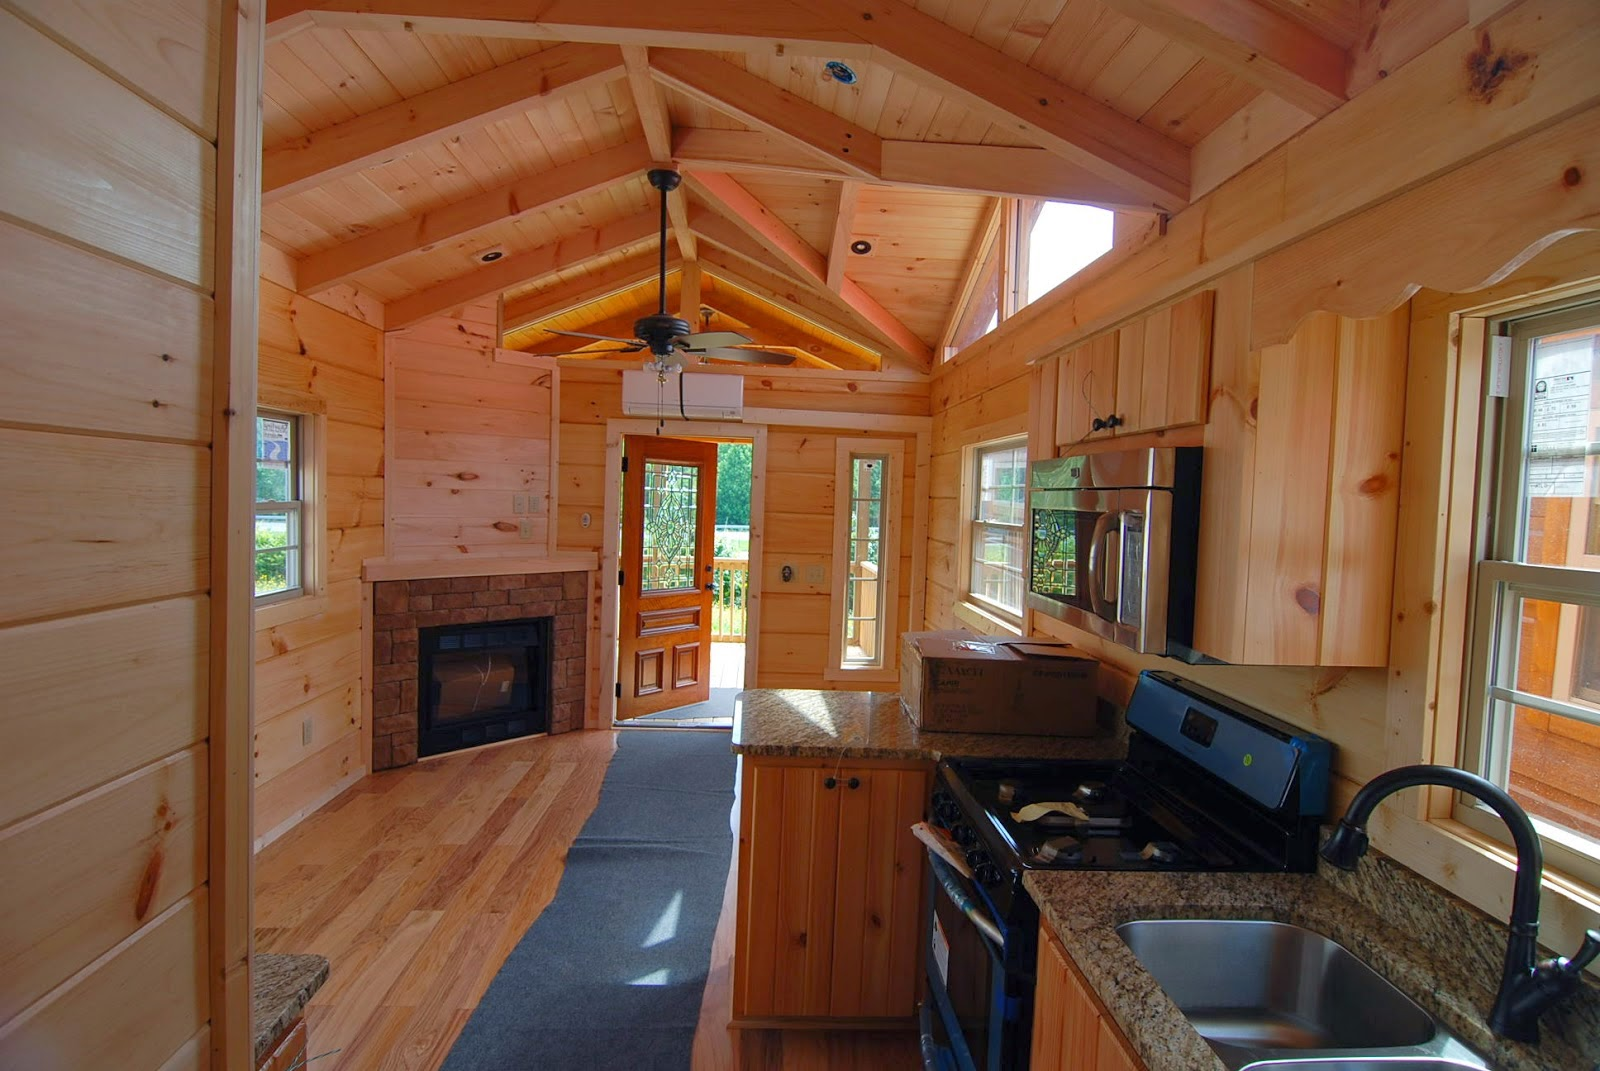 MODULAR HOME BUILDER Green River Cabins